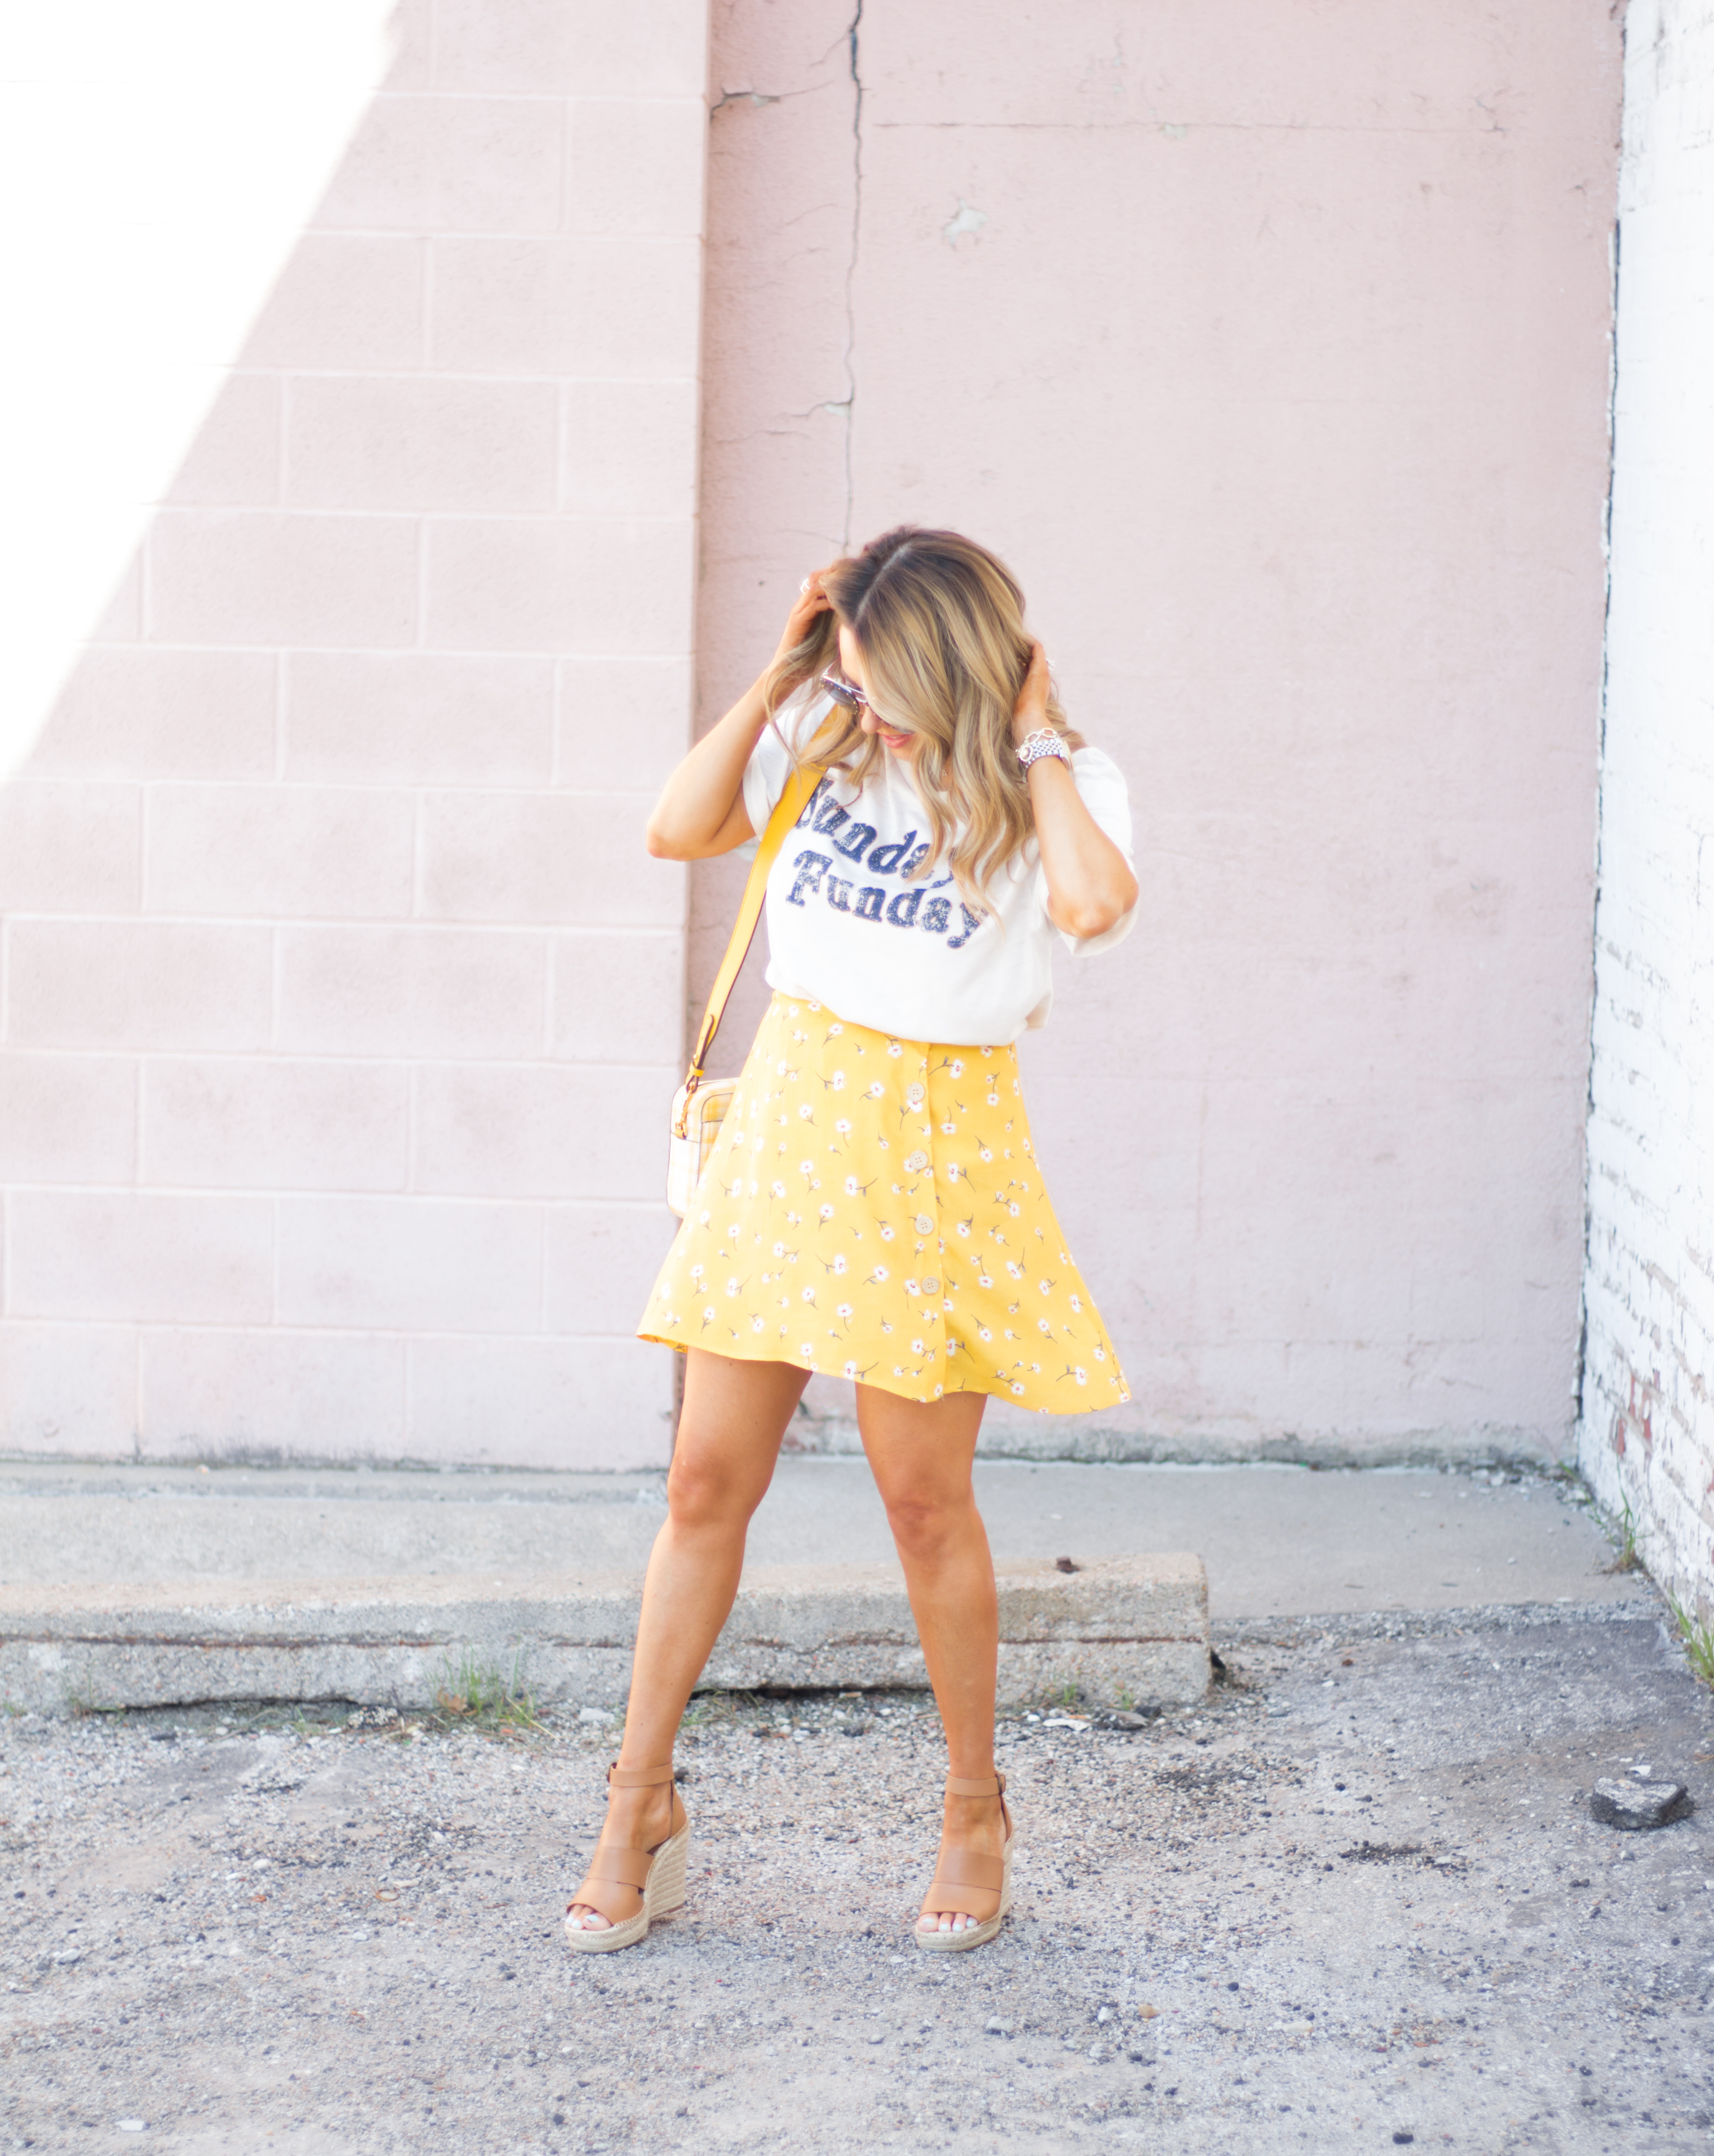 Sunday Funday-Graphic Tee-Floral Skirt-Mini Skirt-Spring Fashion-Spring Style-Tory Burch Purse-Quay Sunglasses-Tan Wedges-Espadrilles-Yellow-Colorful Style-Sabby Style-Women's Fashion-Omaha Blog-Omaha Blogger-7